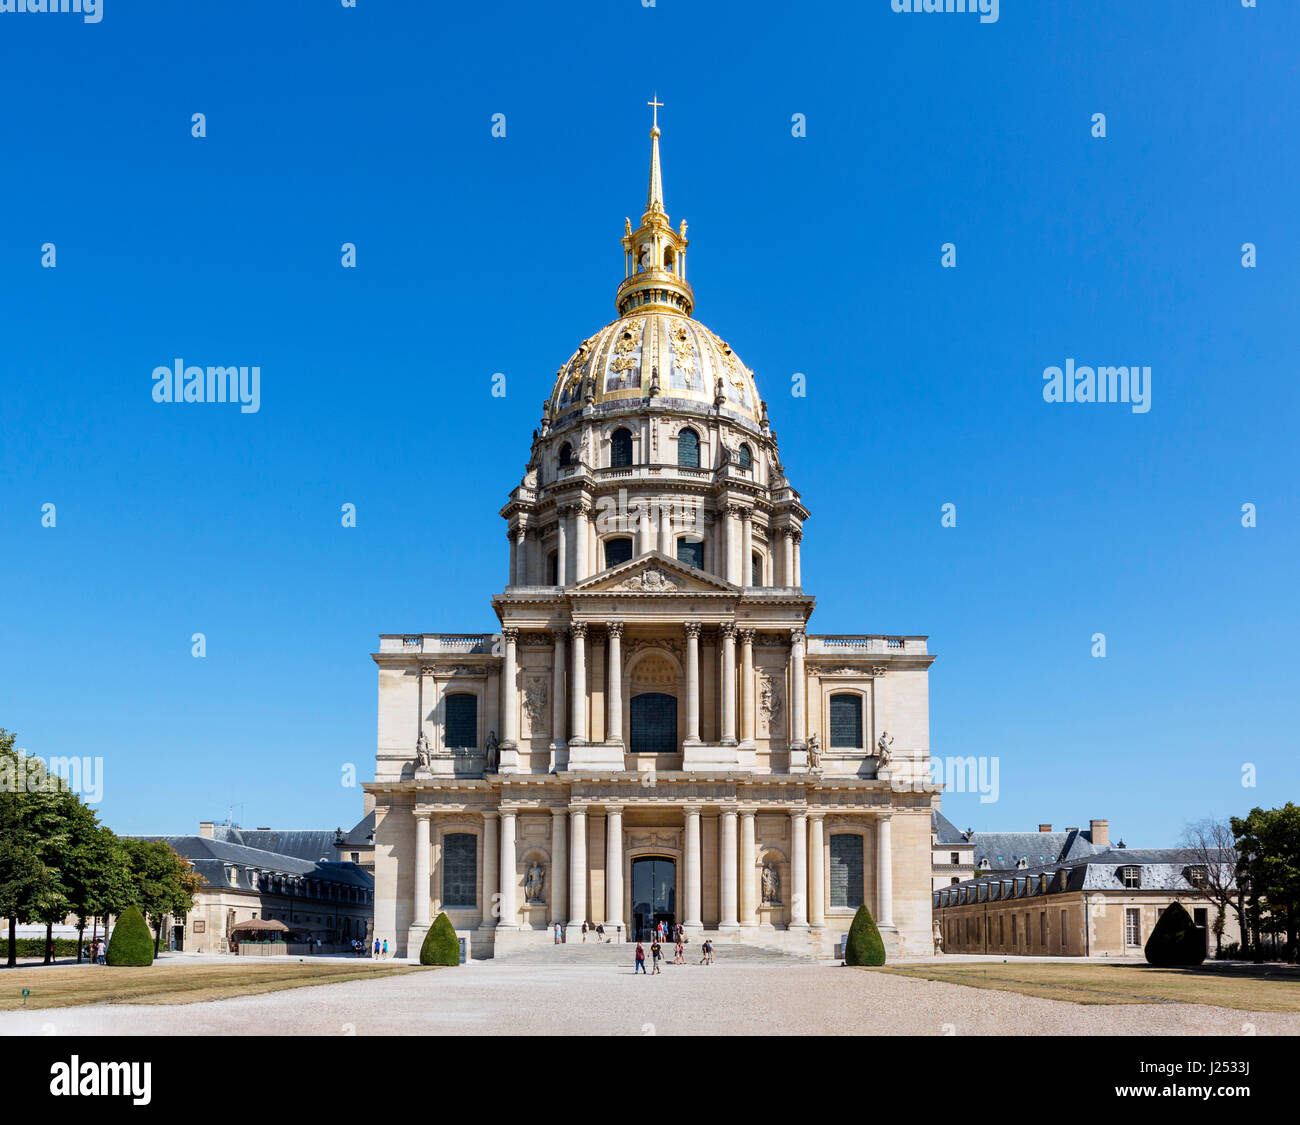 Dome des Invalides at Les Invalides, Paris, France - Stock Image